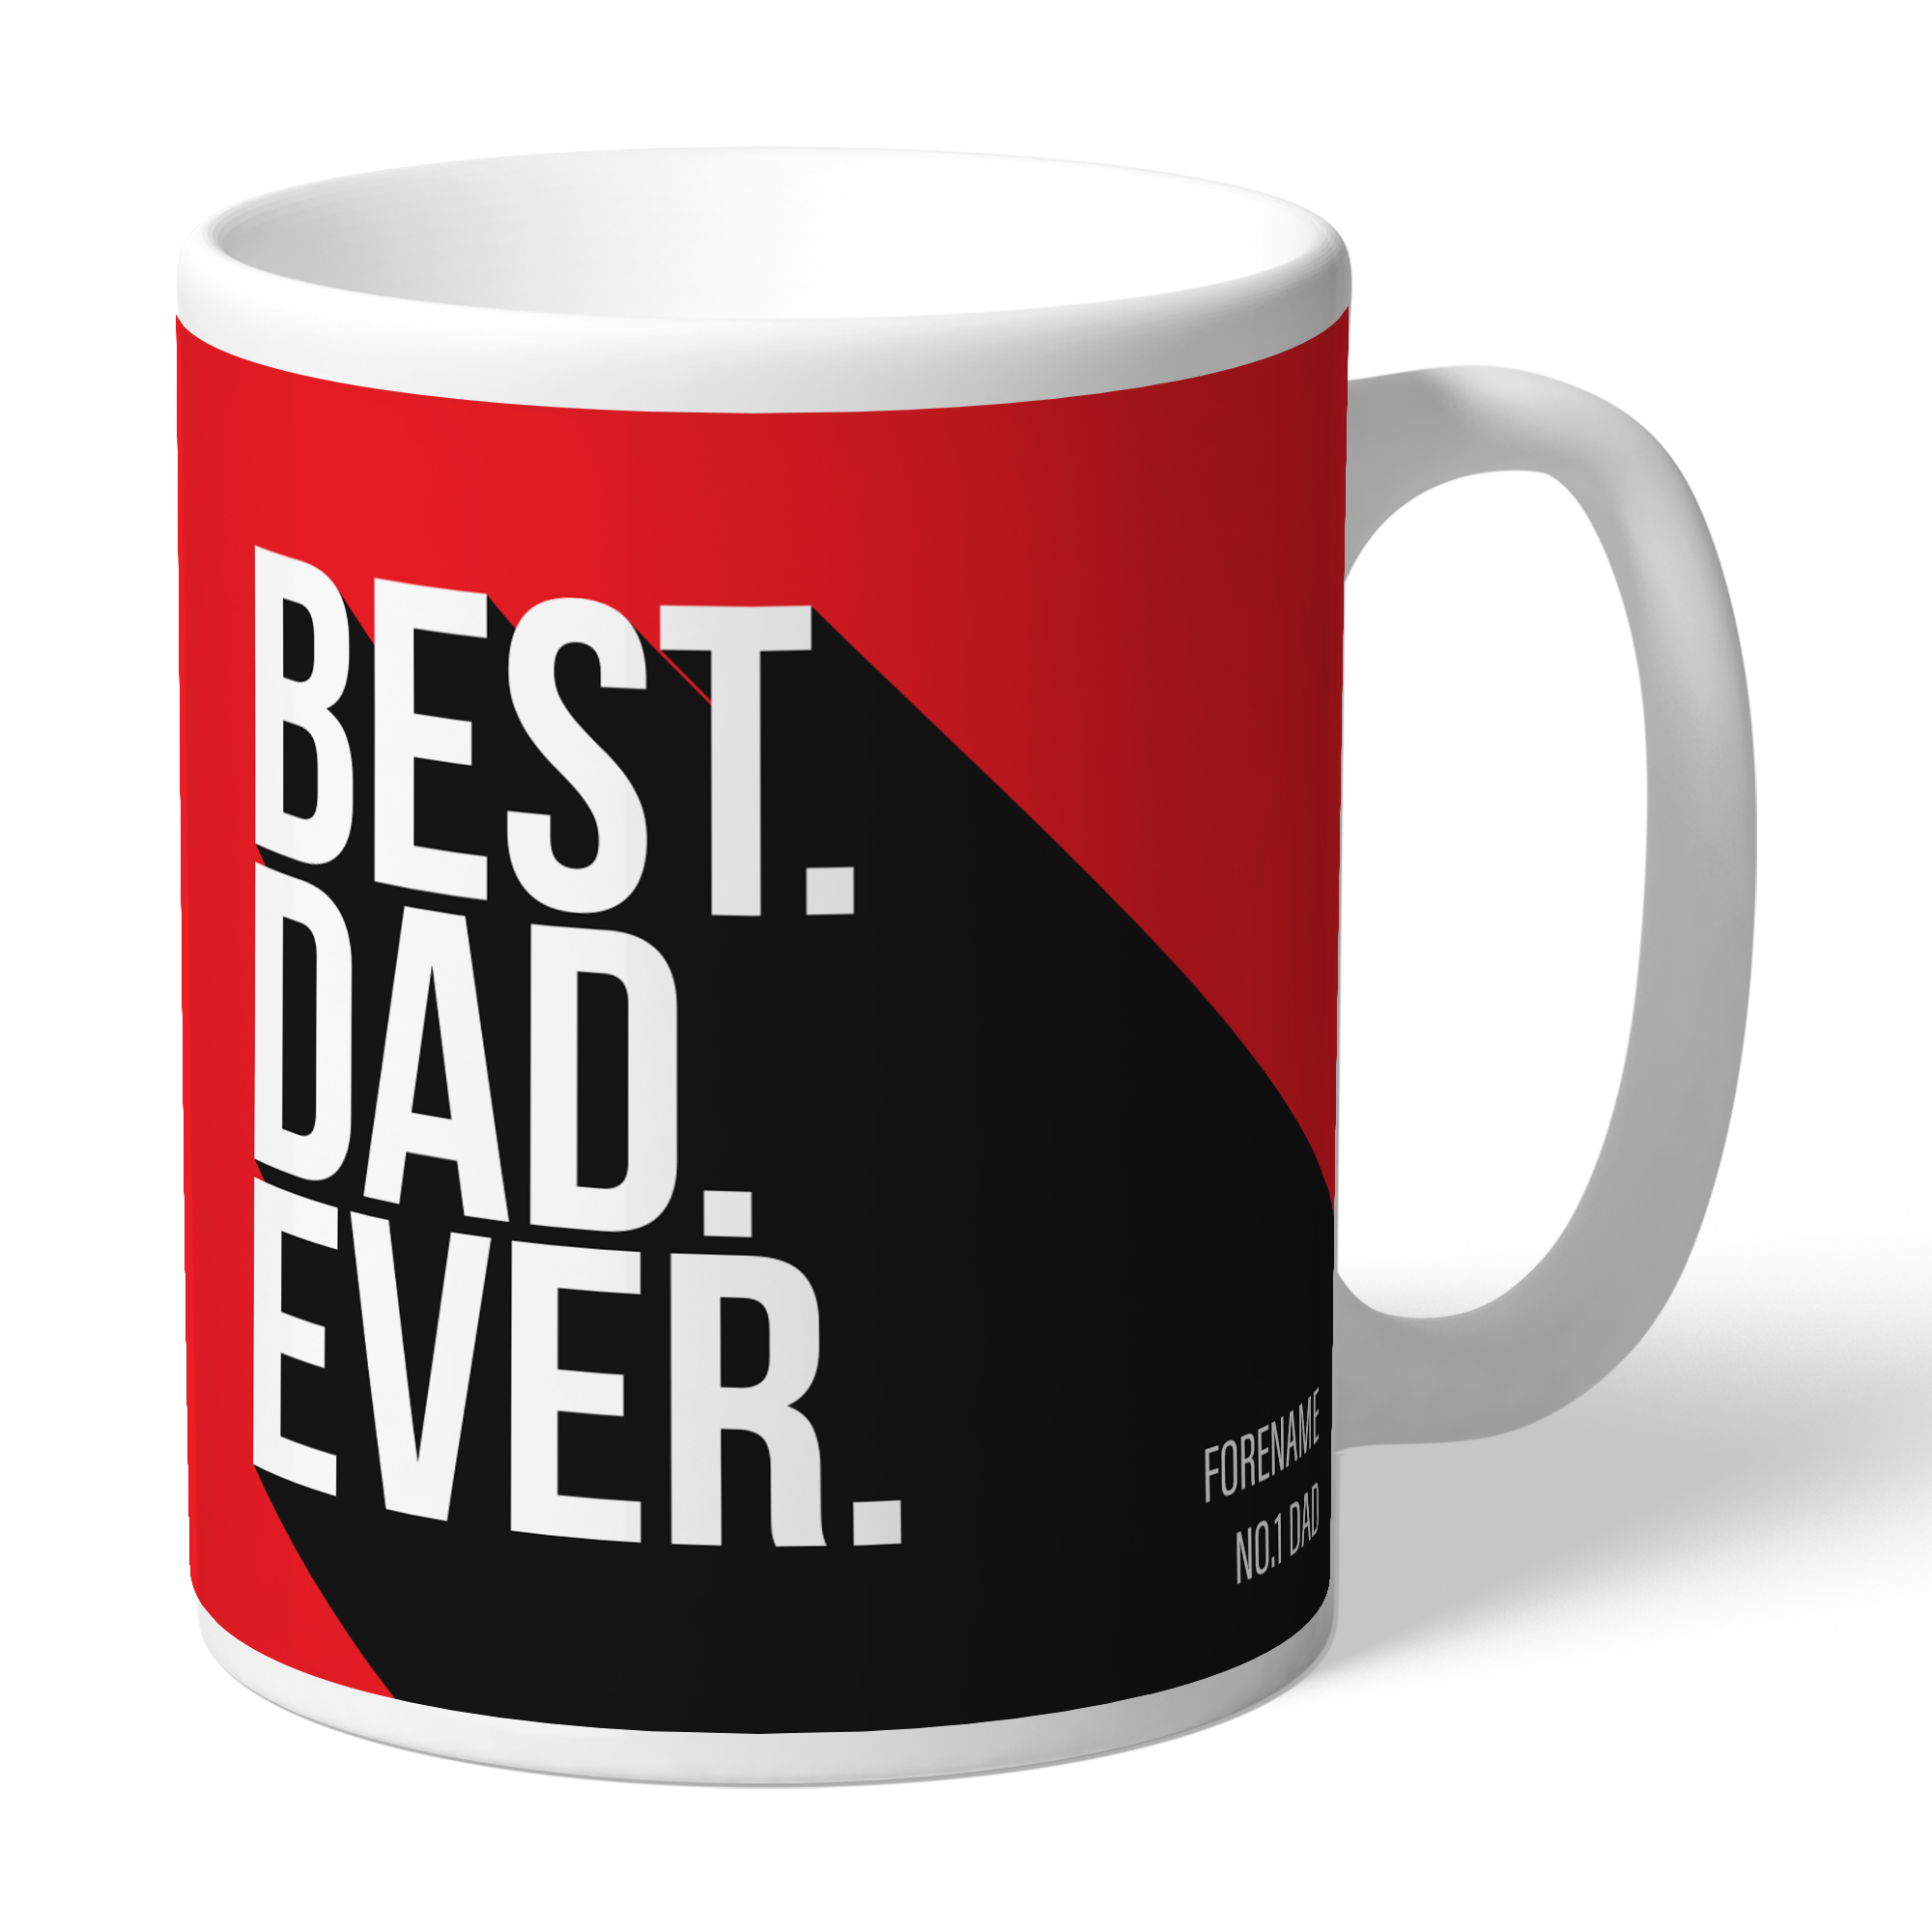 Sheffield United Best Dad Ever Mug